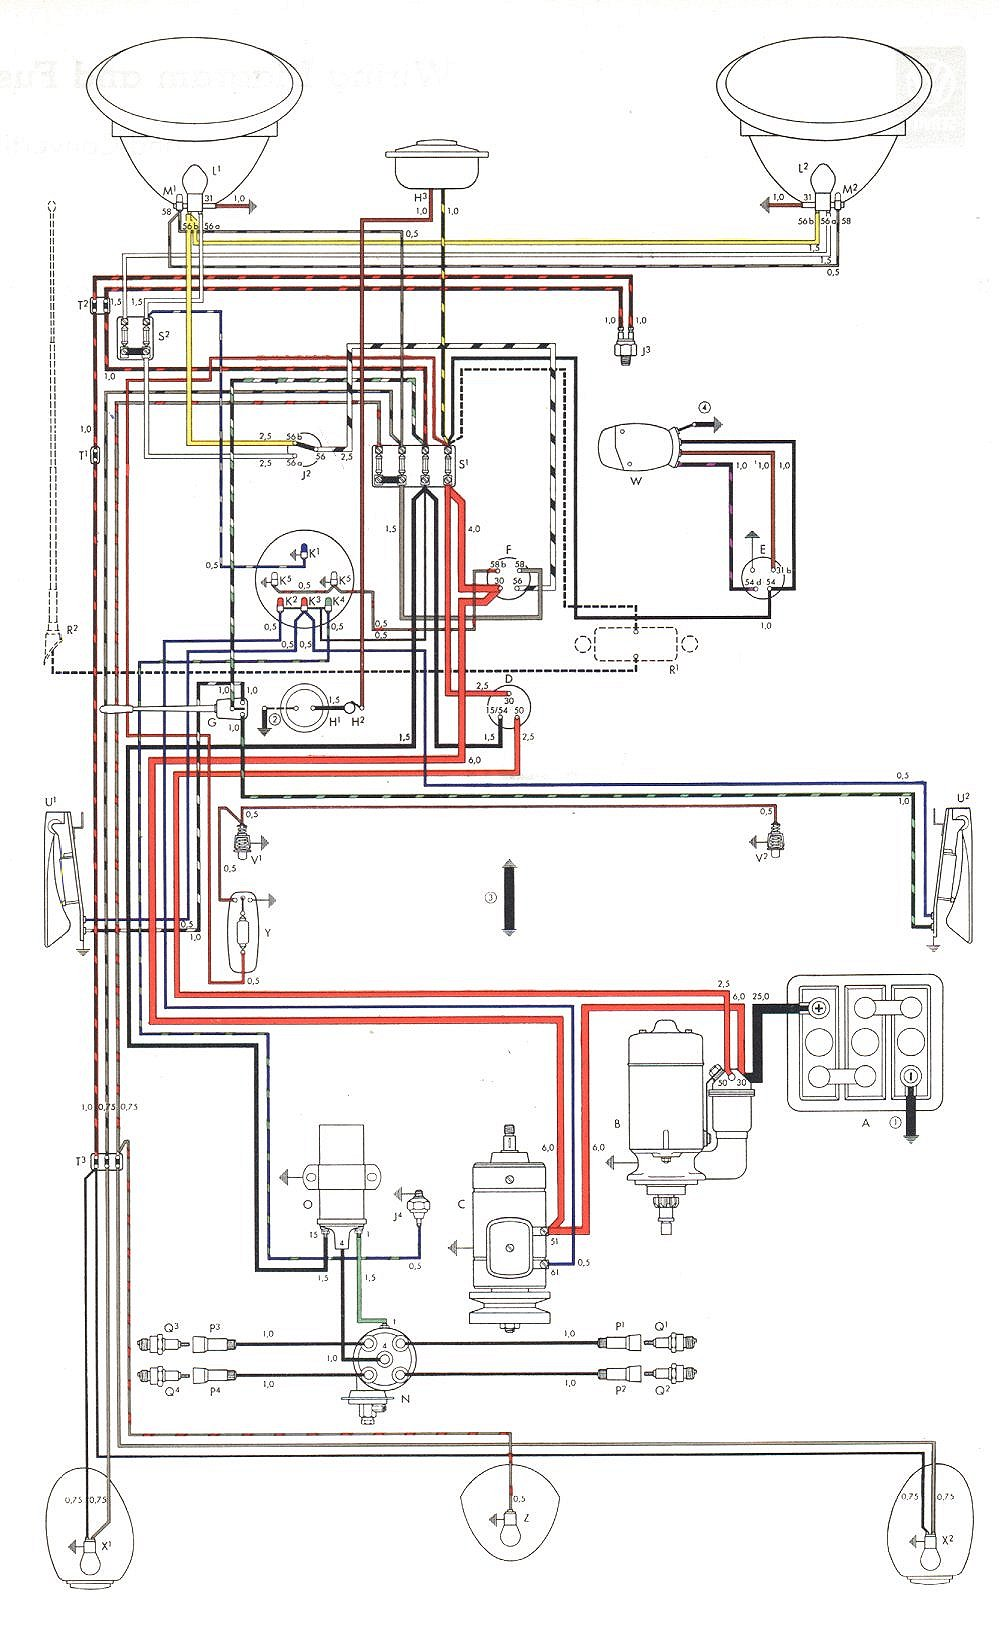 1969 vw bug wiring harness wiring diagram \u2022 1978 VW Super Beetle Diagrams at 1973 Vw Bug Instrument Panel Wiring Diagram